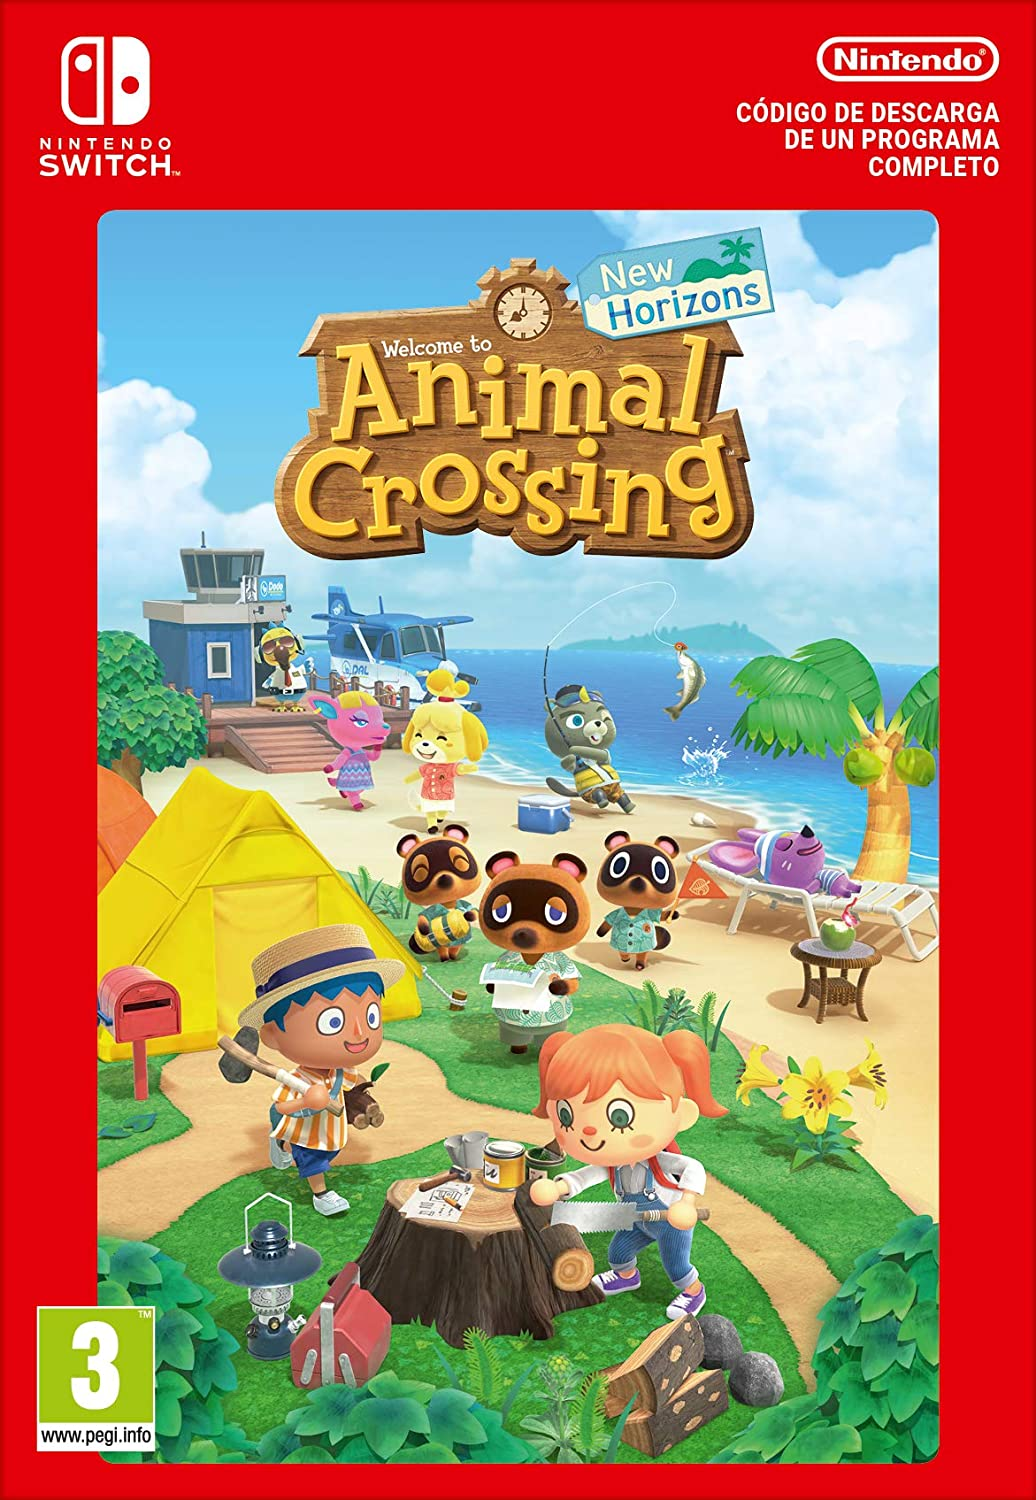 Animal Crossing: New Horizons Estándar | Nintendo Switch - Código de descarga: Amazon.es: Videojuegos